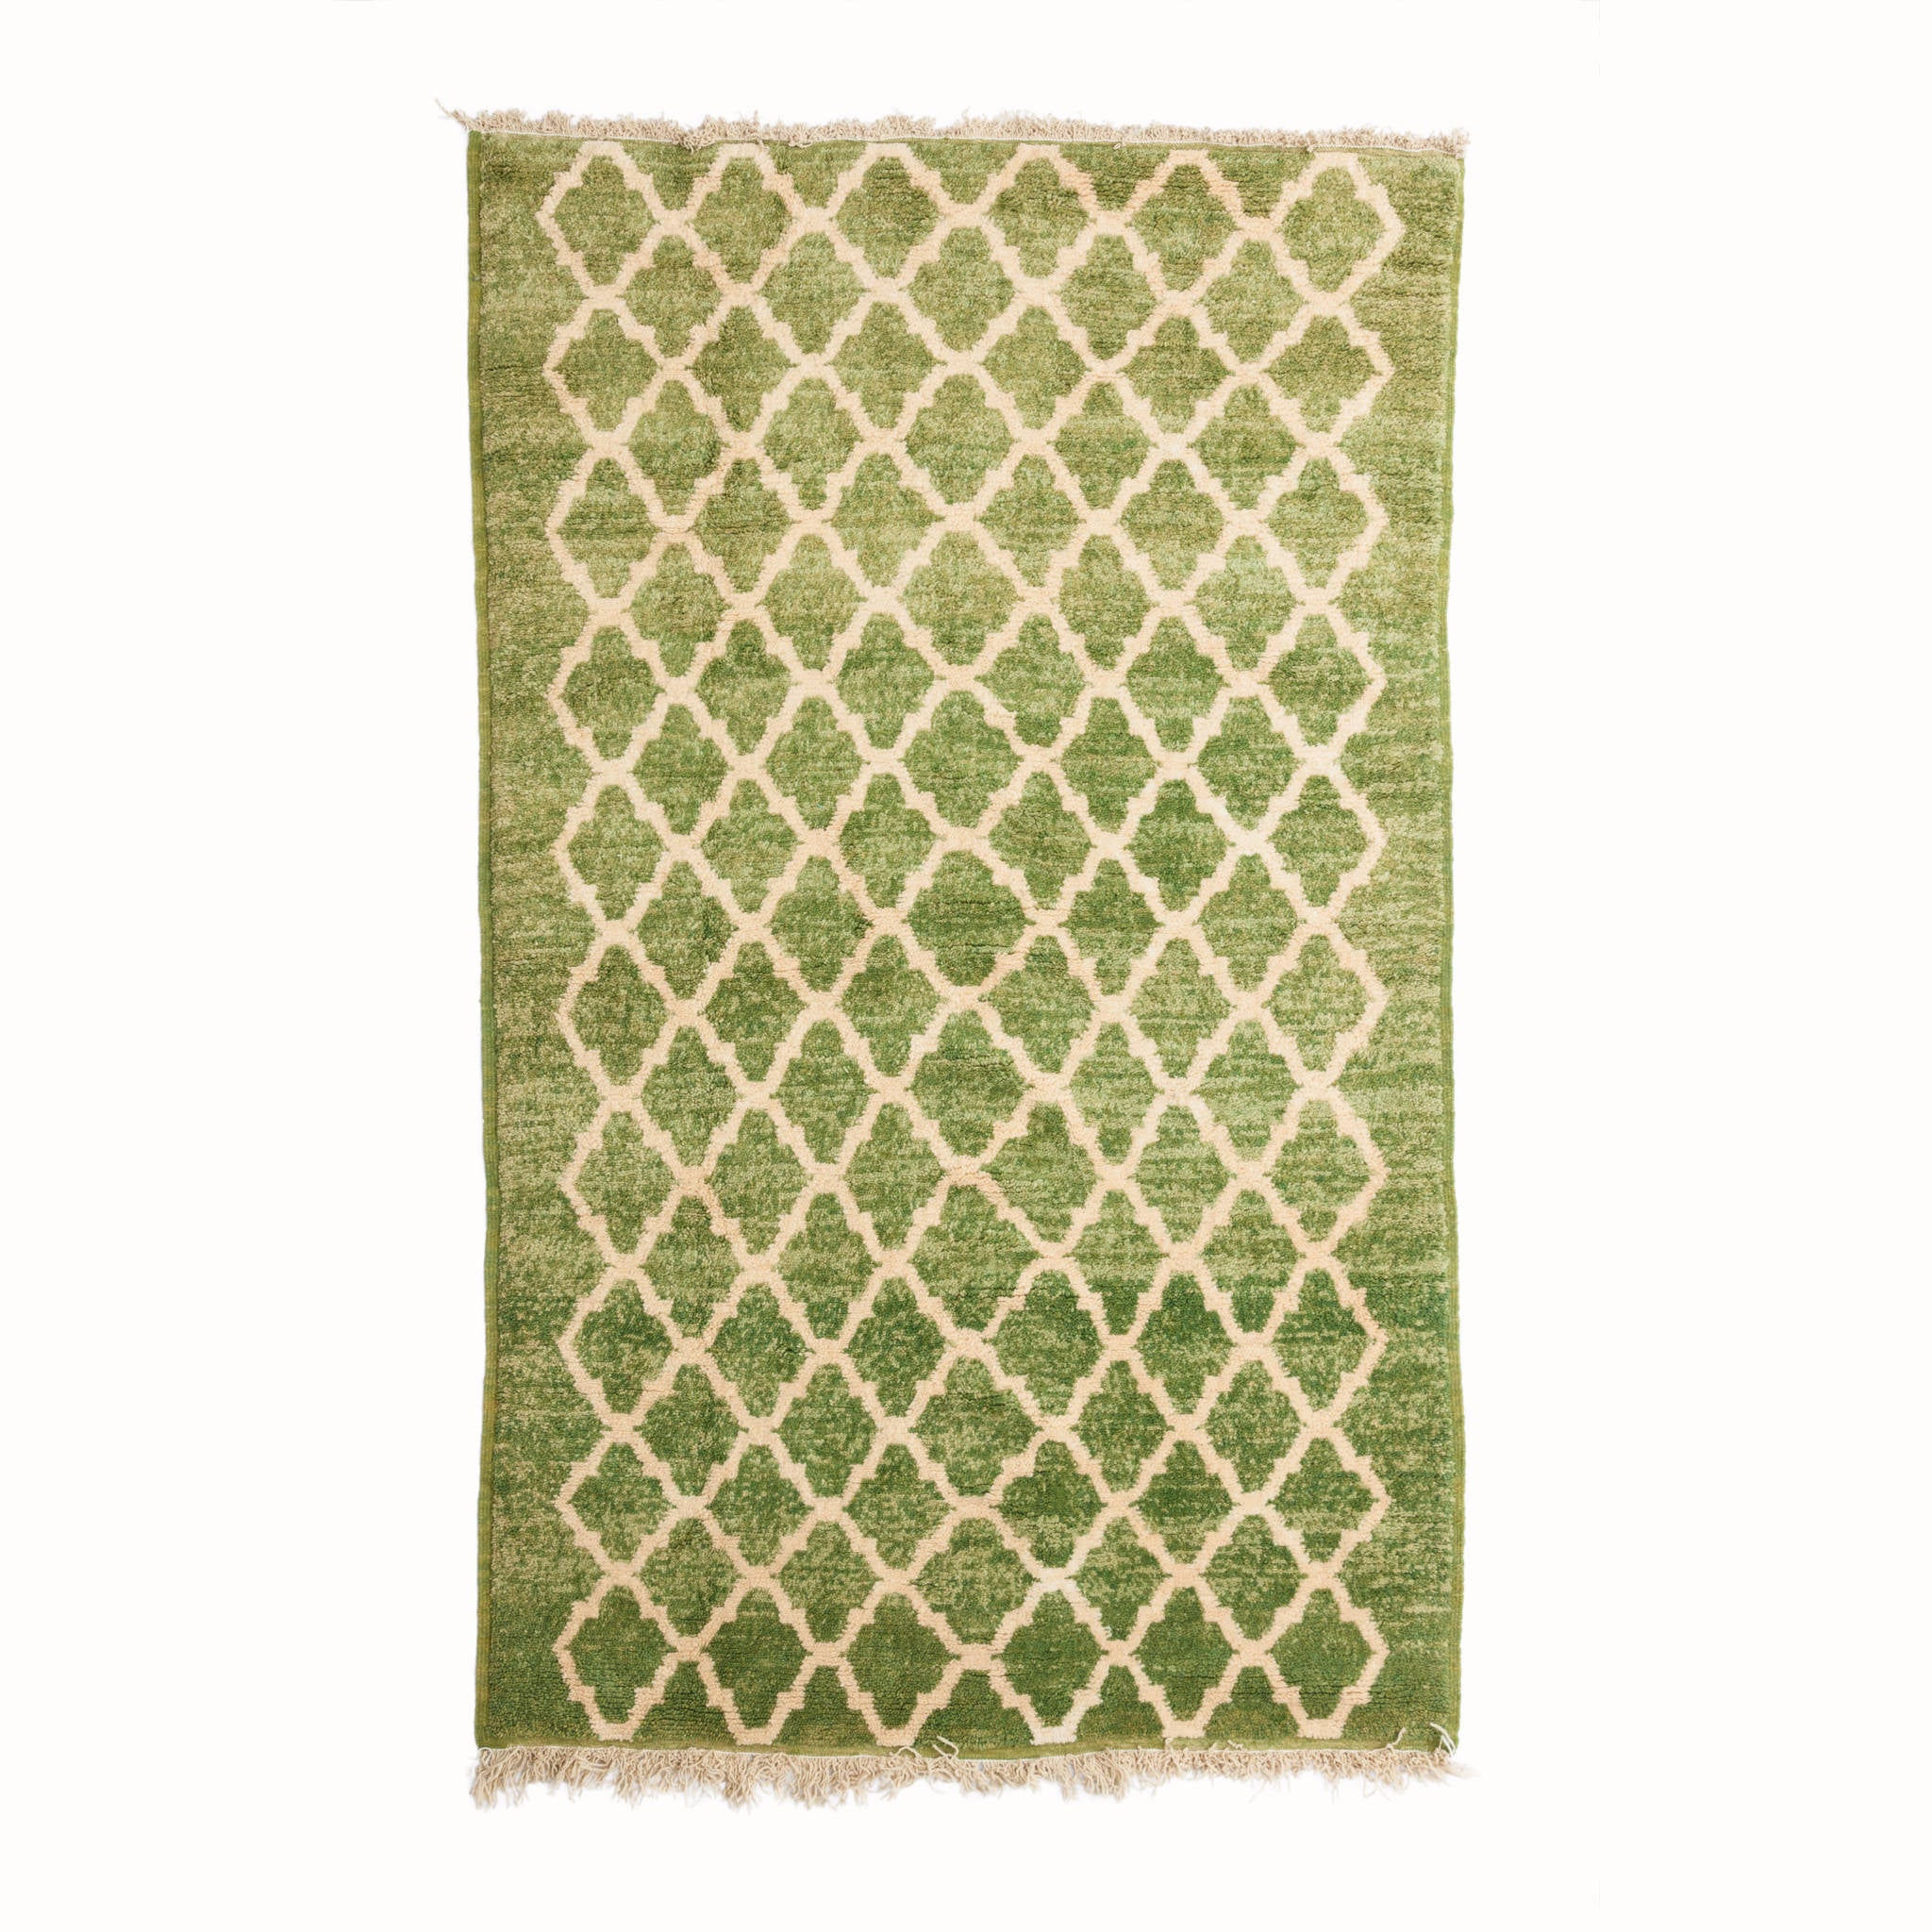 Emerald Green Patterned Berber Rug